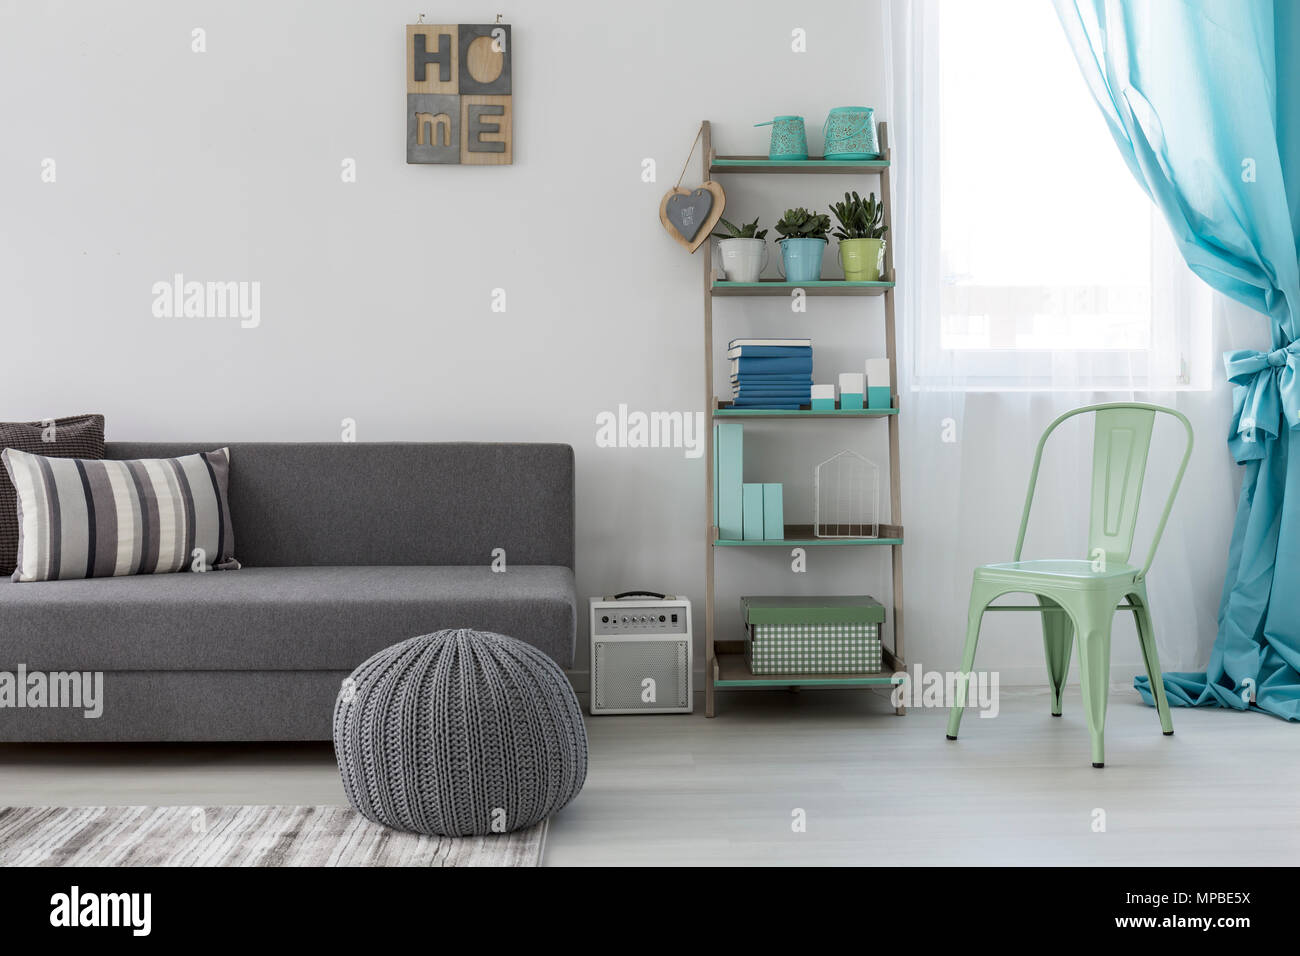 Surprising Shot Of A Bright Living Room With A Minimalist Grey Couch Machost Co Dining Chair Design Ideas Machostcouk